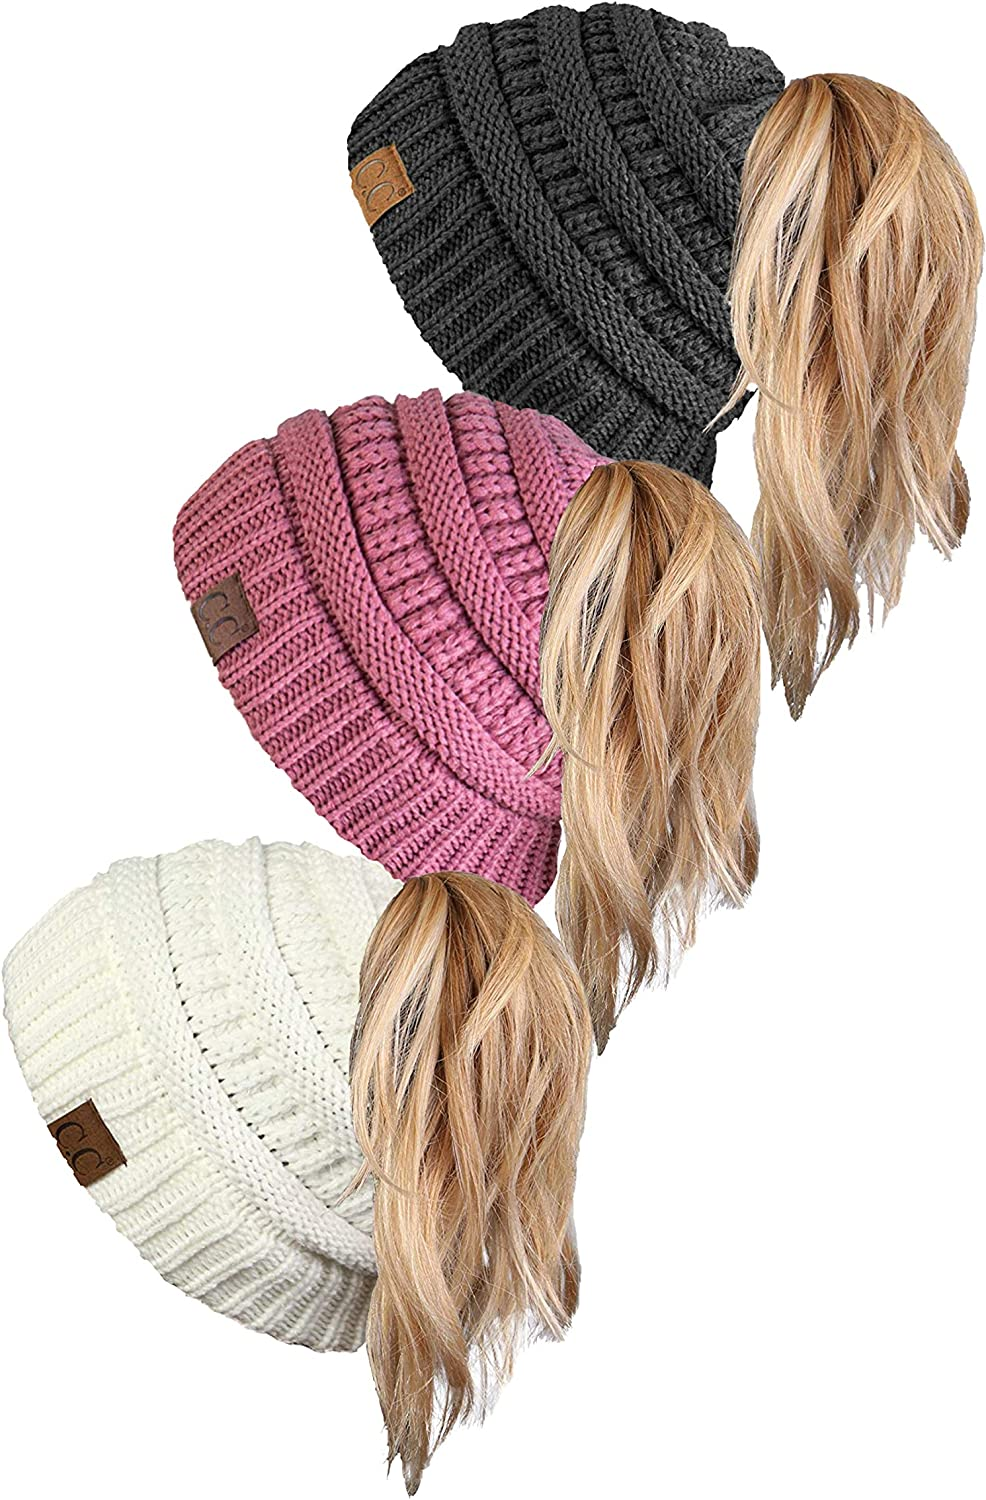 Funky Limited time for free Outlet ☆ Free Shipping shipping Junque Ponytail Messy Bun Beanie BeanieTail Women's Solid